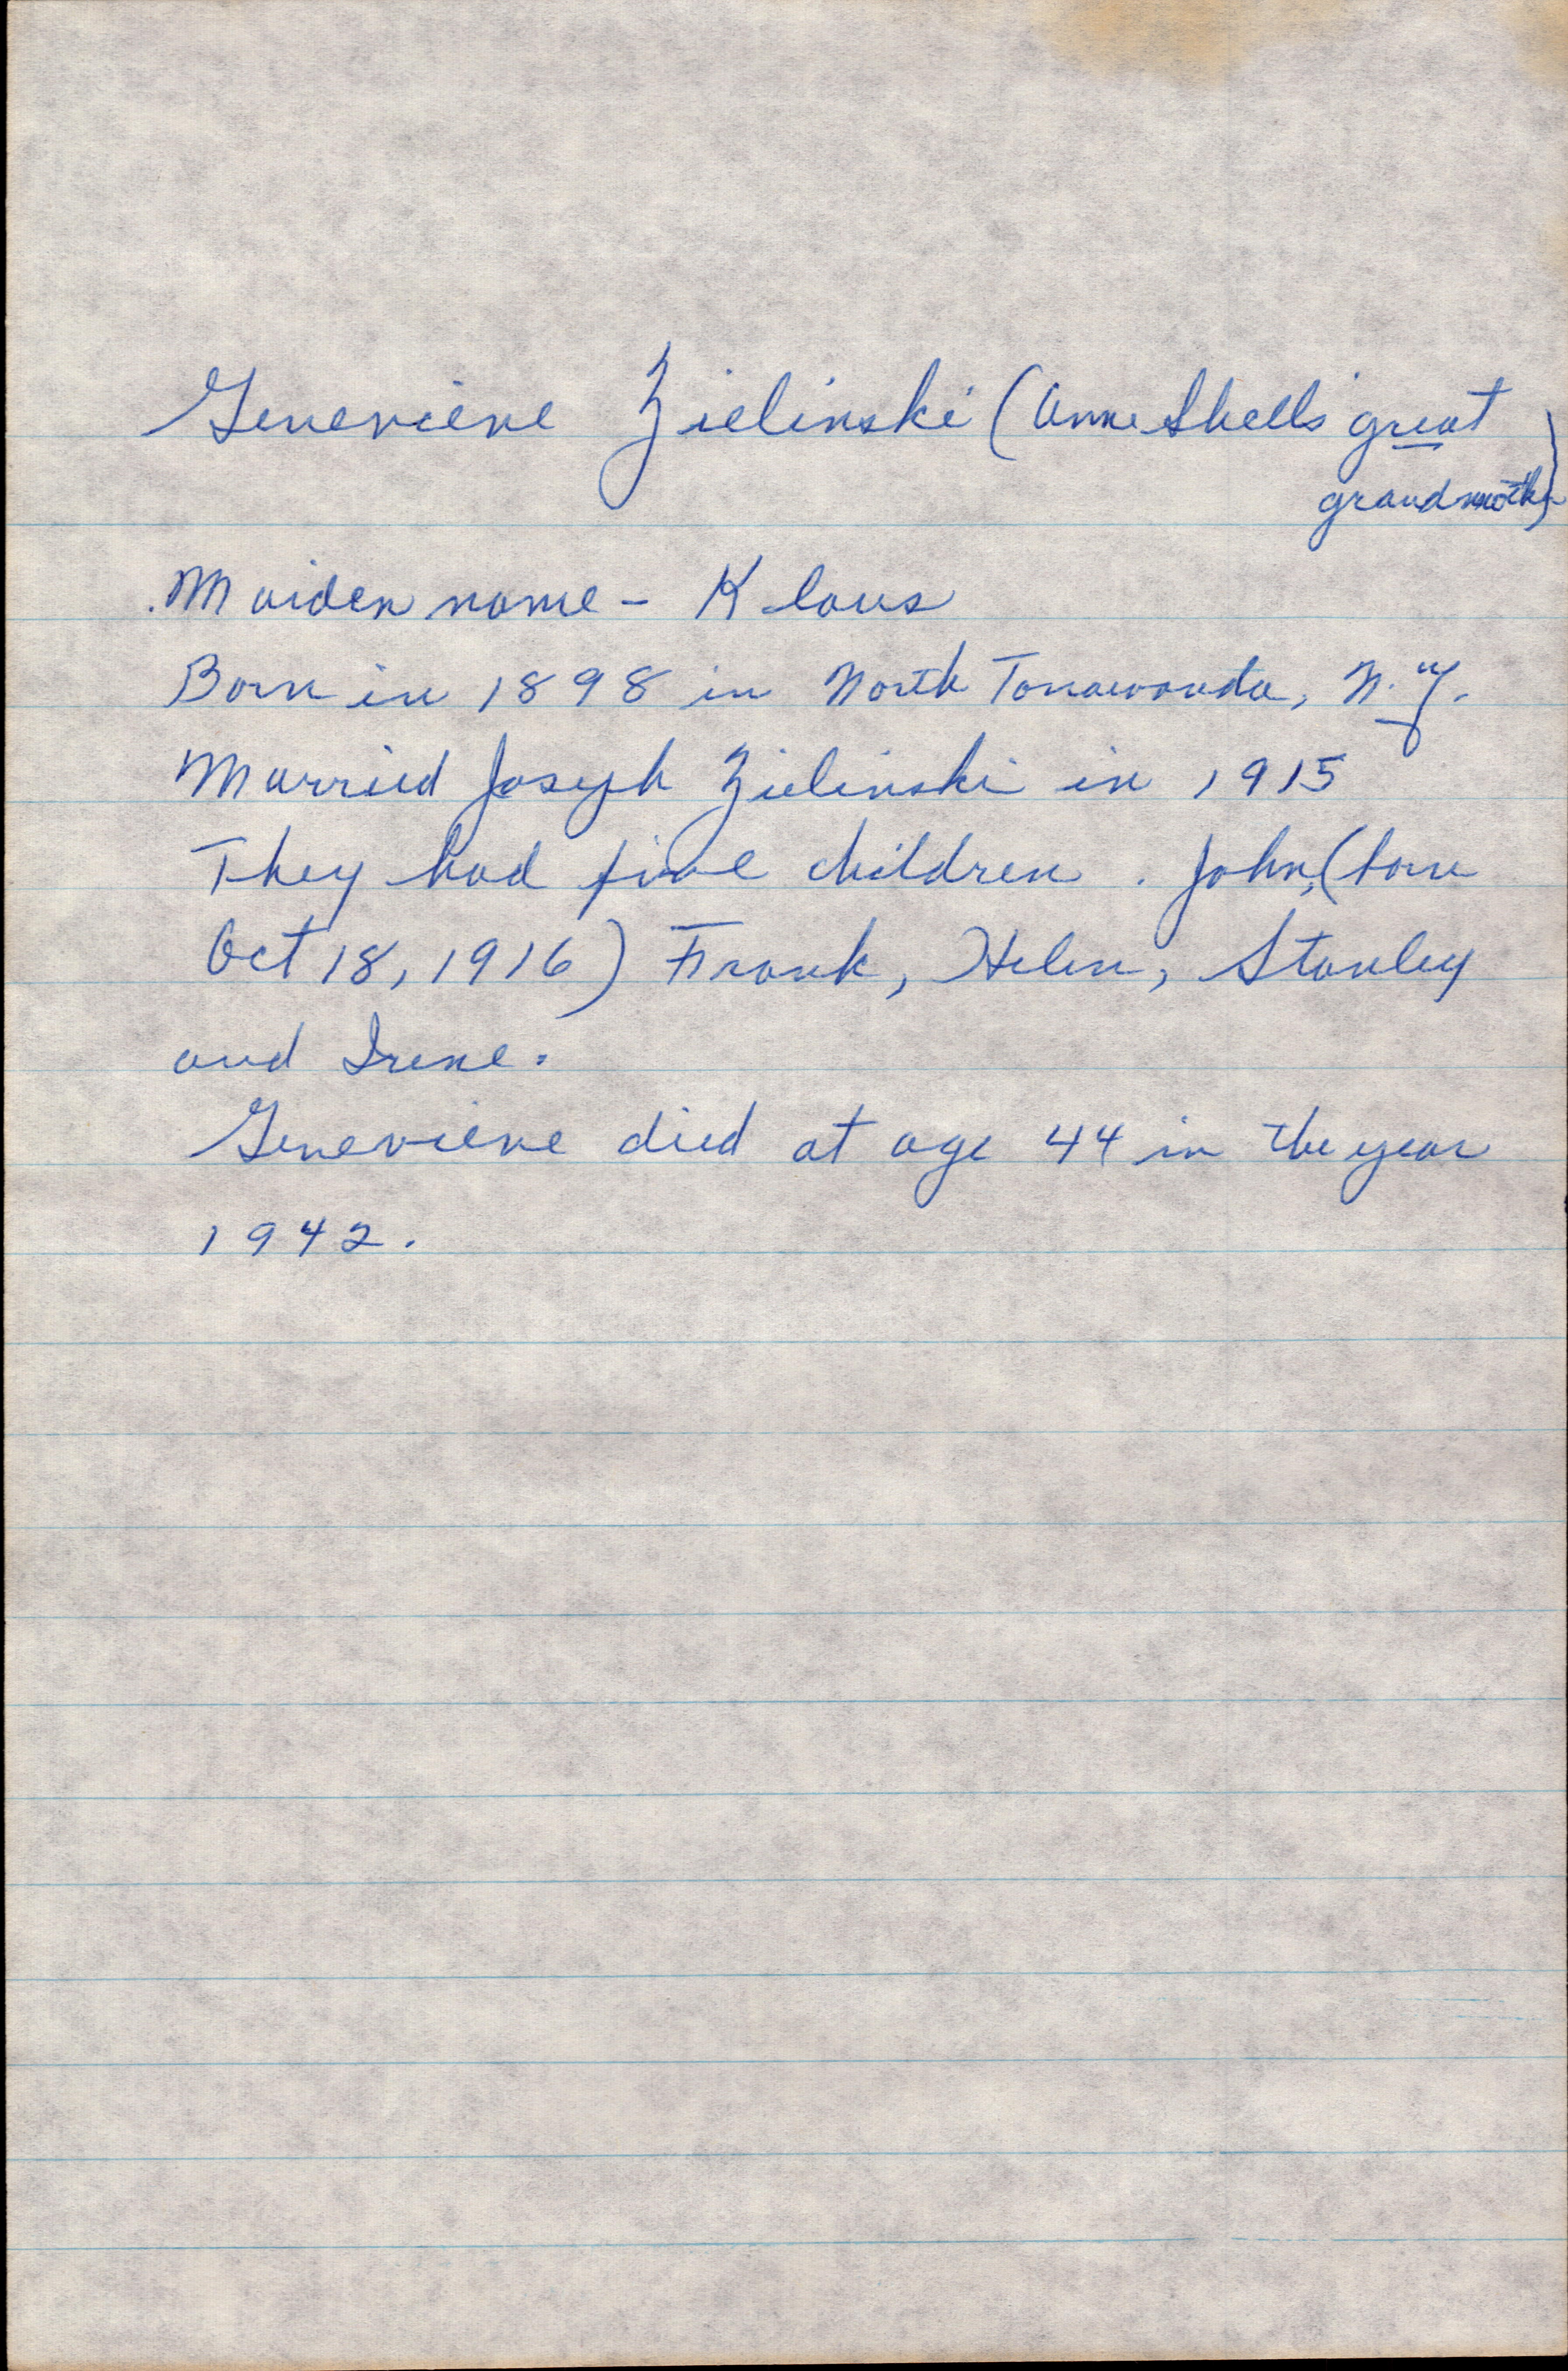 Letter from Grandma Helen 1977 page 4